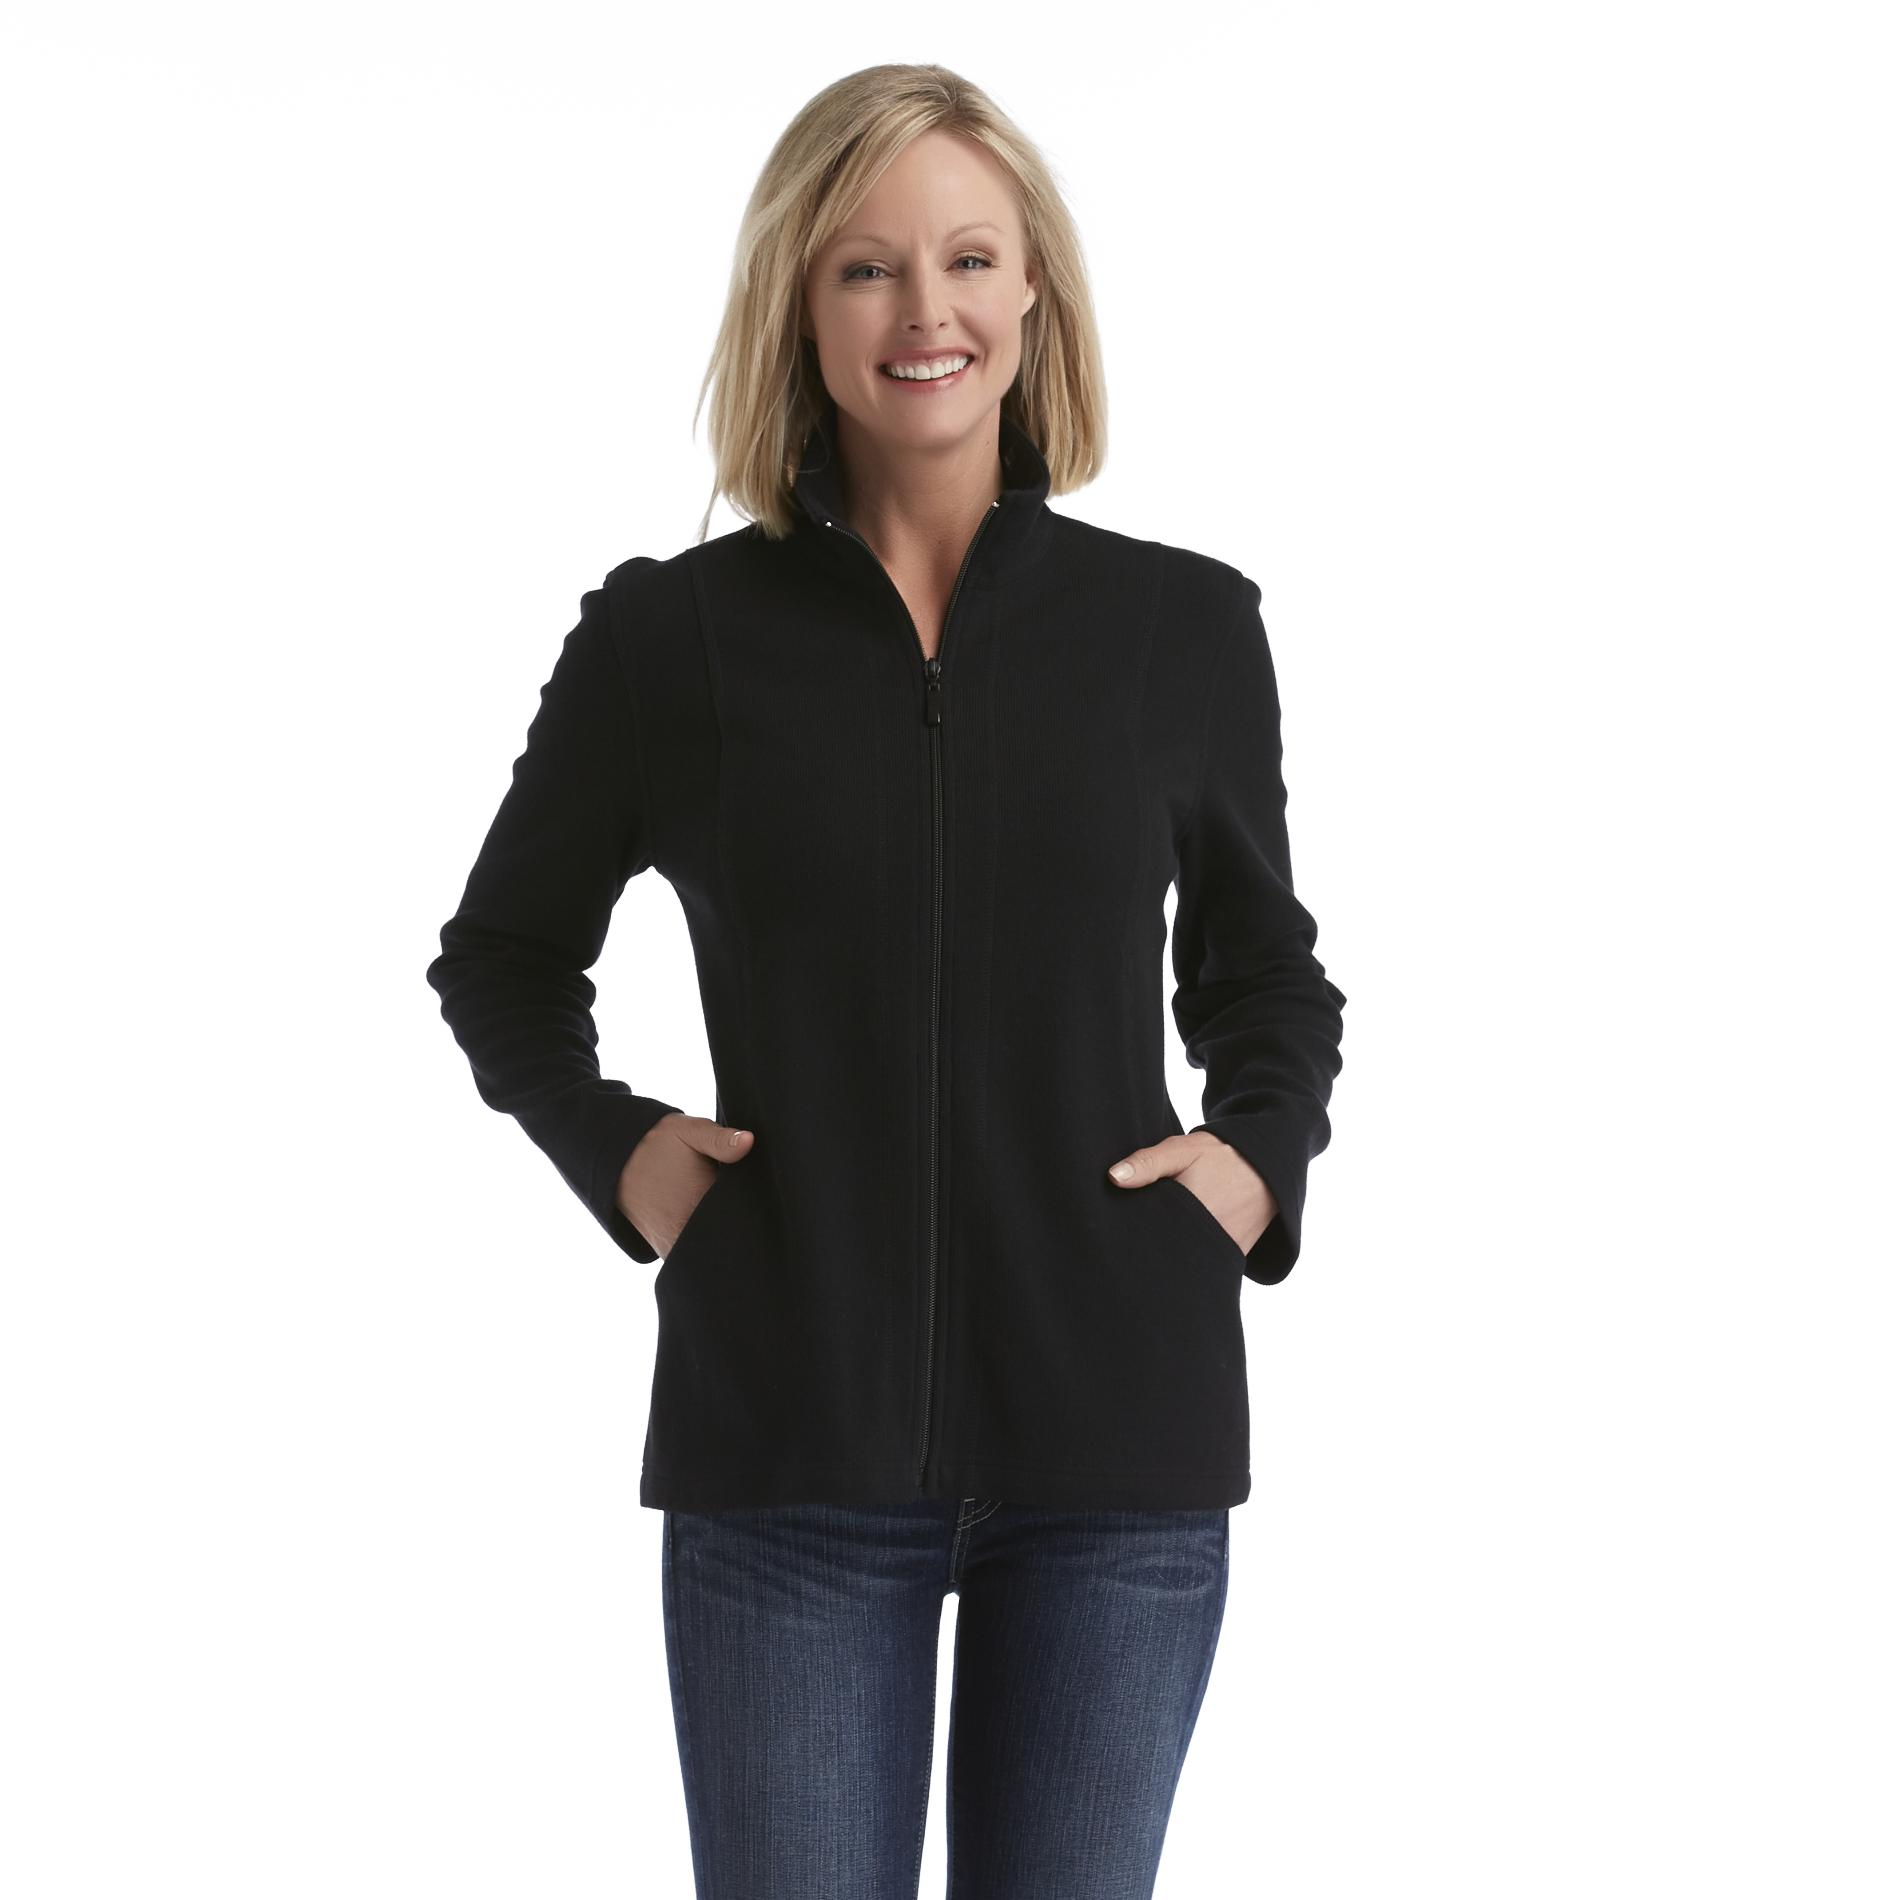 Laura Scott Women's Ribbed Jacket at Sears.com